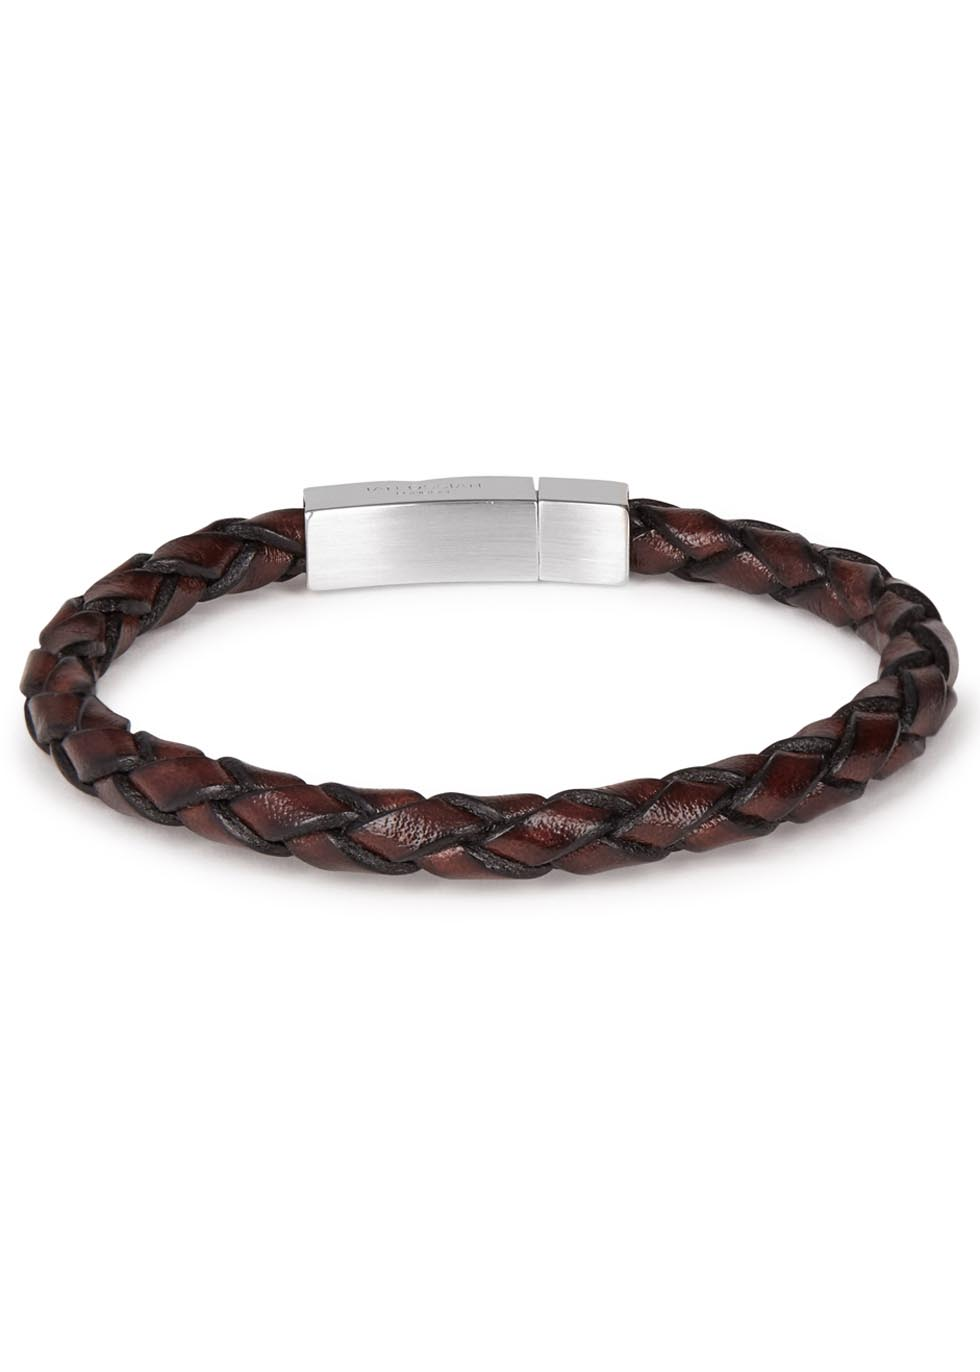 Scoubidou braided leather bracelet - Tateossian